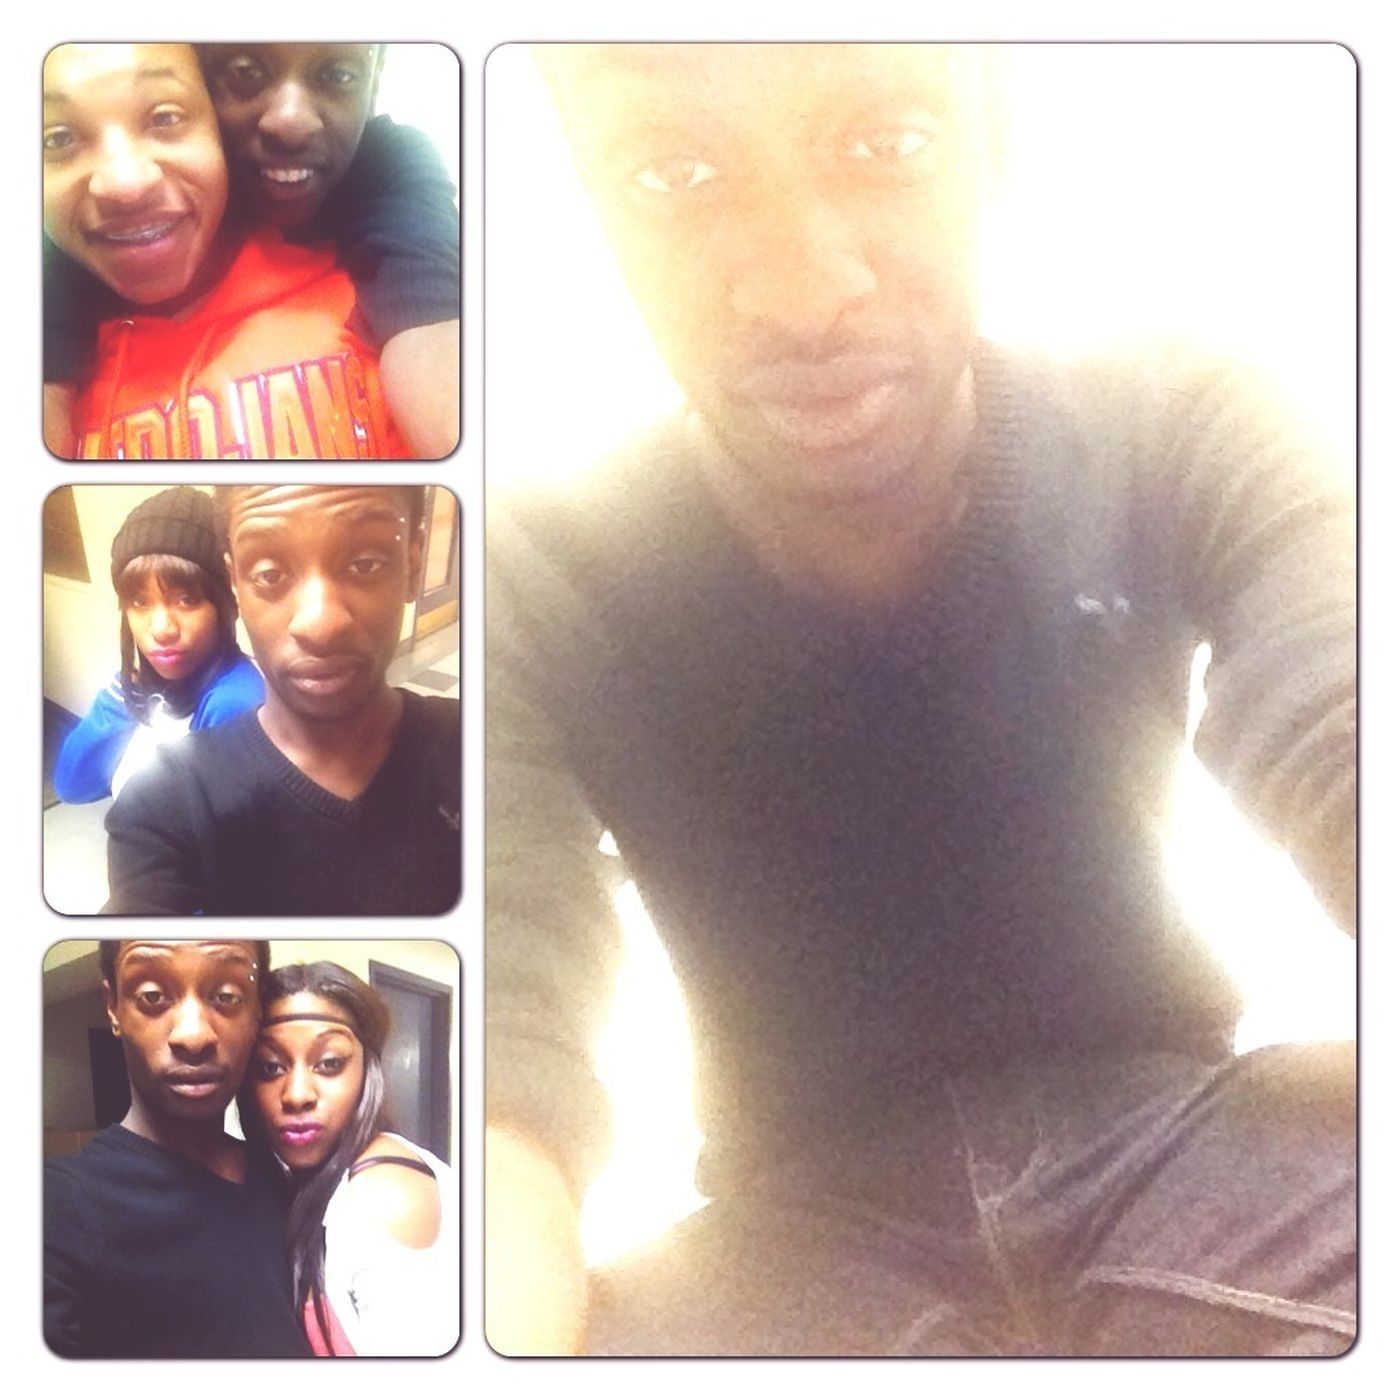 today's events w.these idiots !